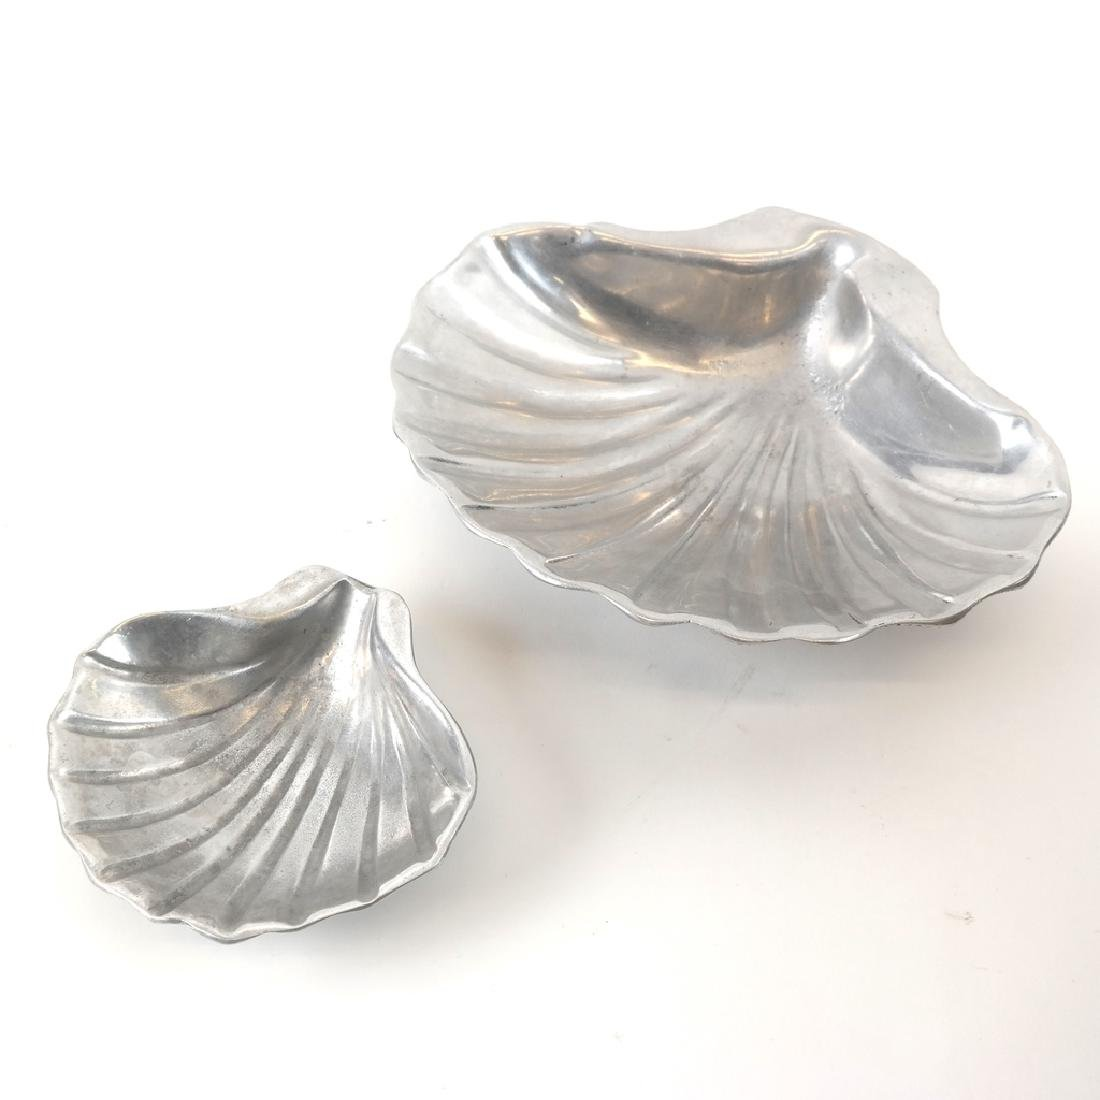 Set of 2 Aluminum Shell Dishes, Attrib. to Arthur Court